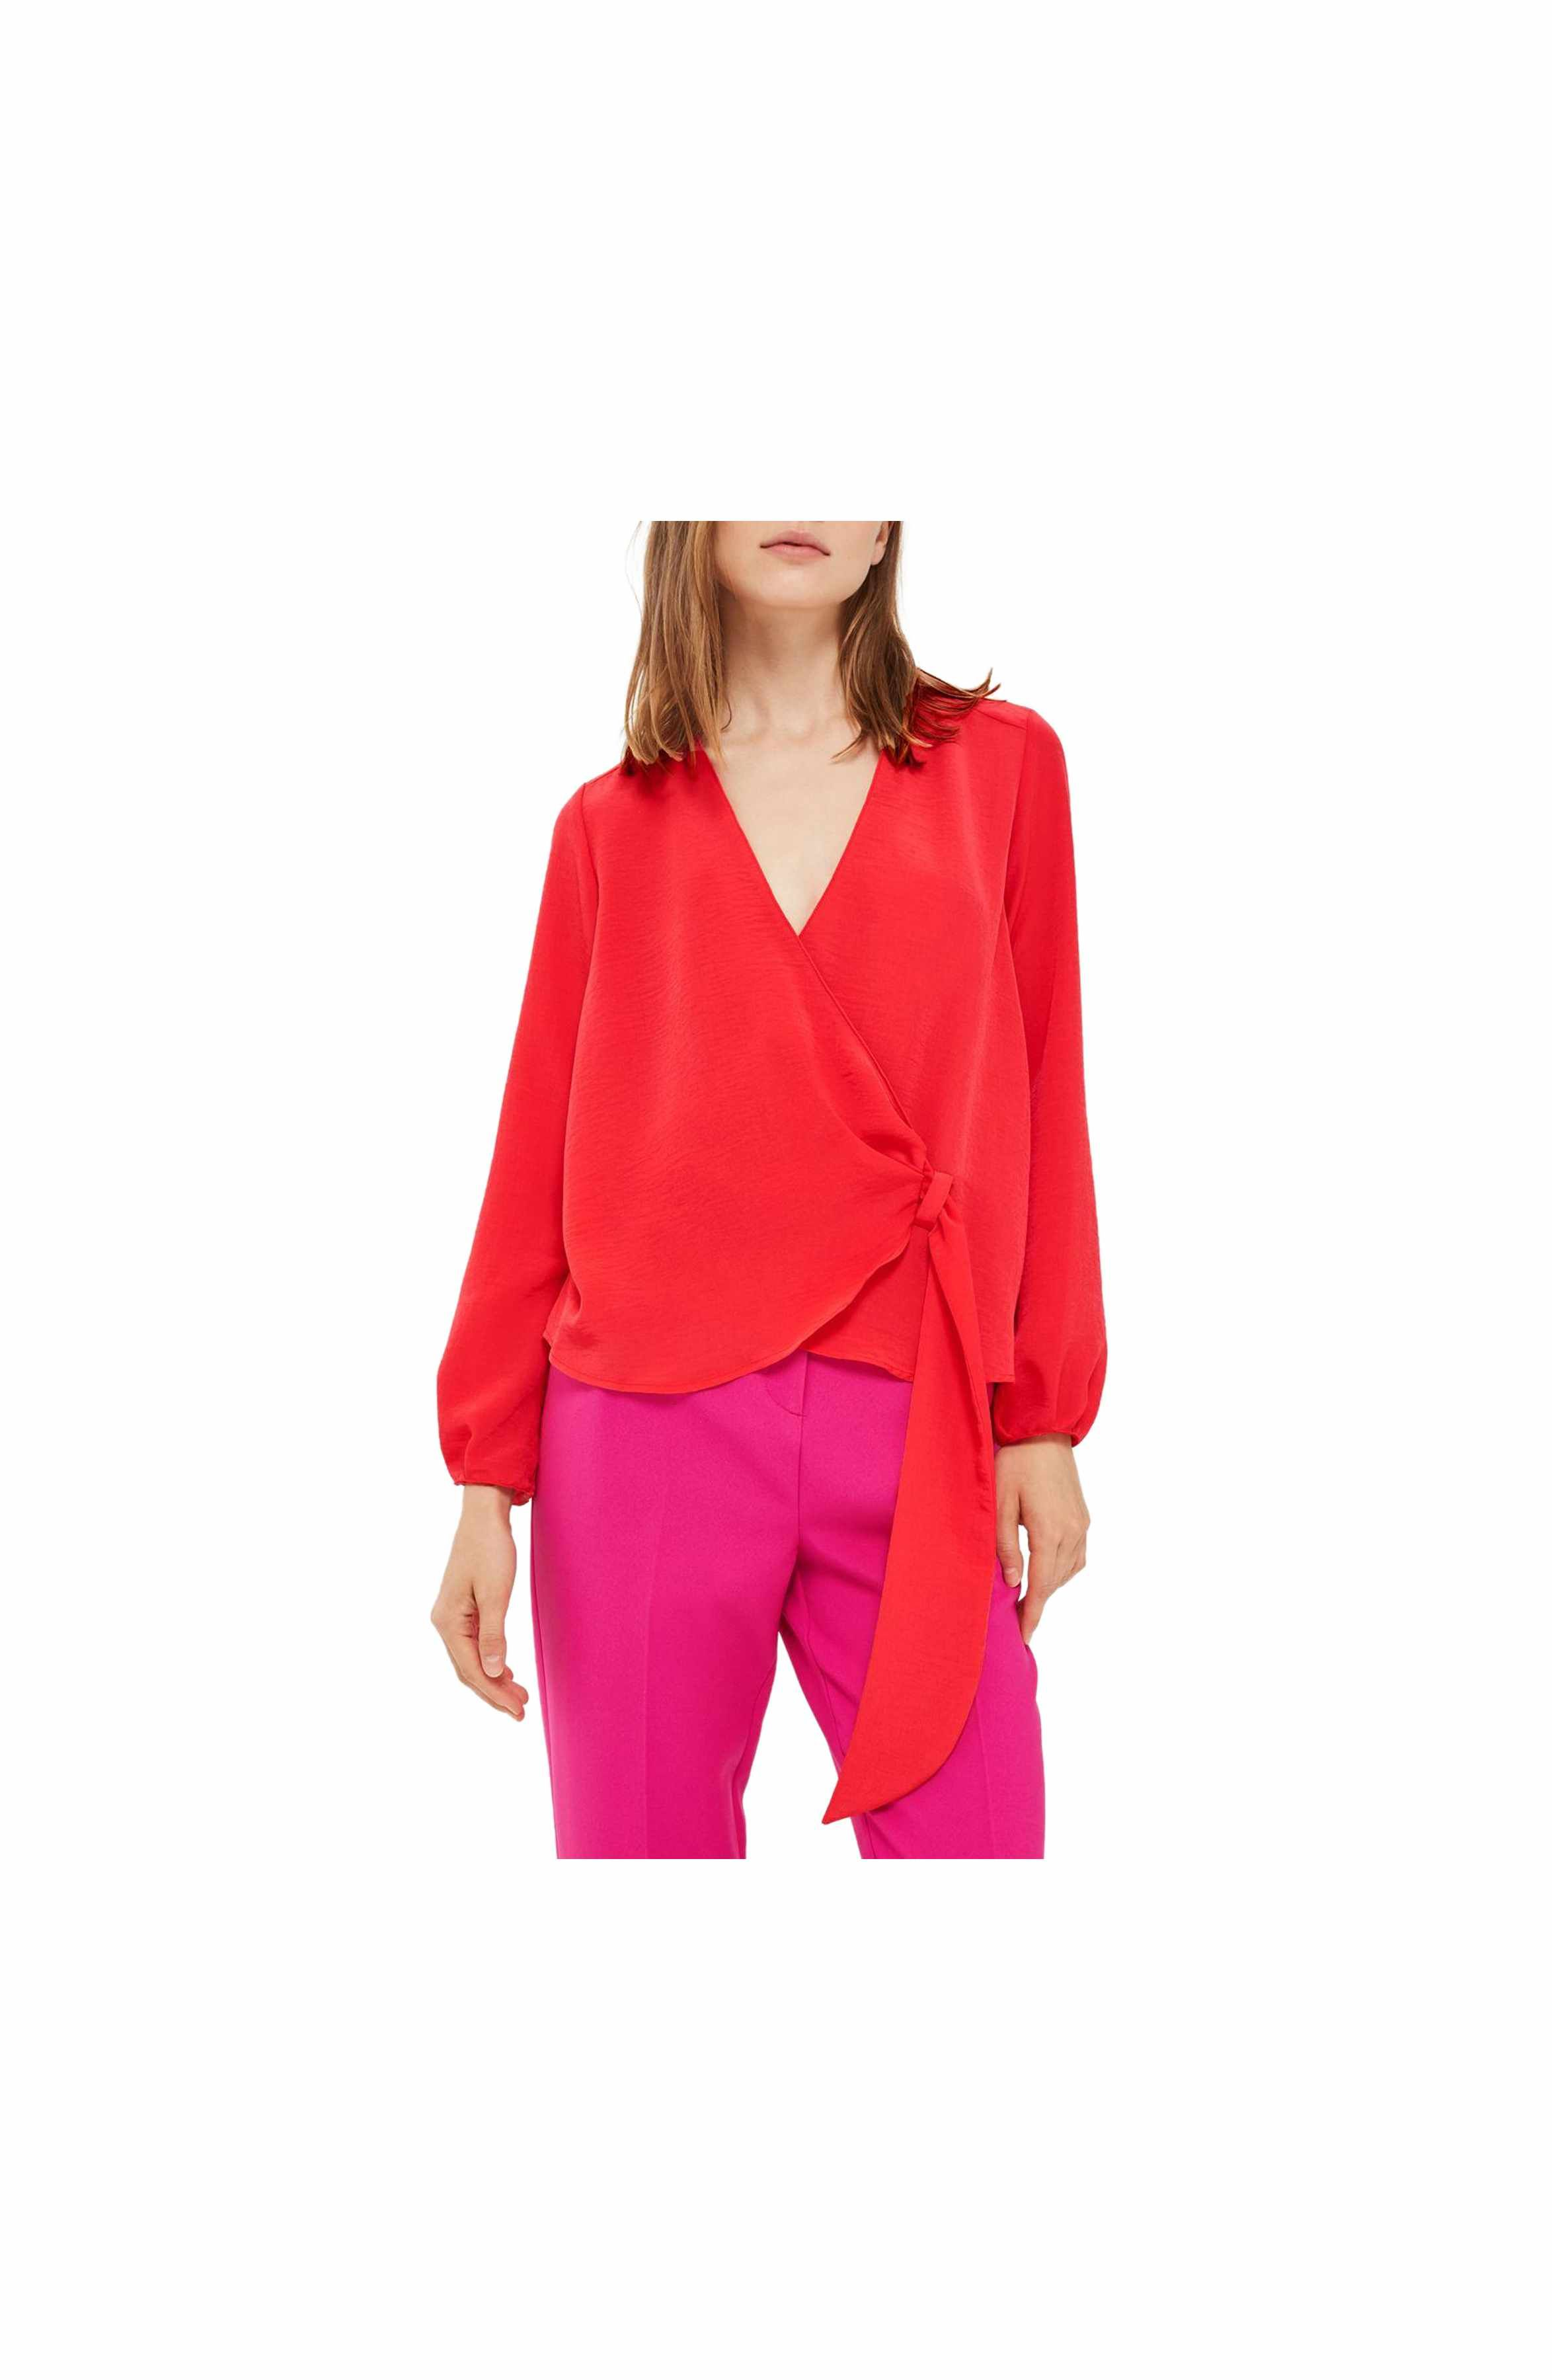 a882b15f4bfc2 Main Image - Topshop Wrap Tuck Blouse